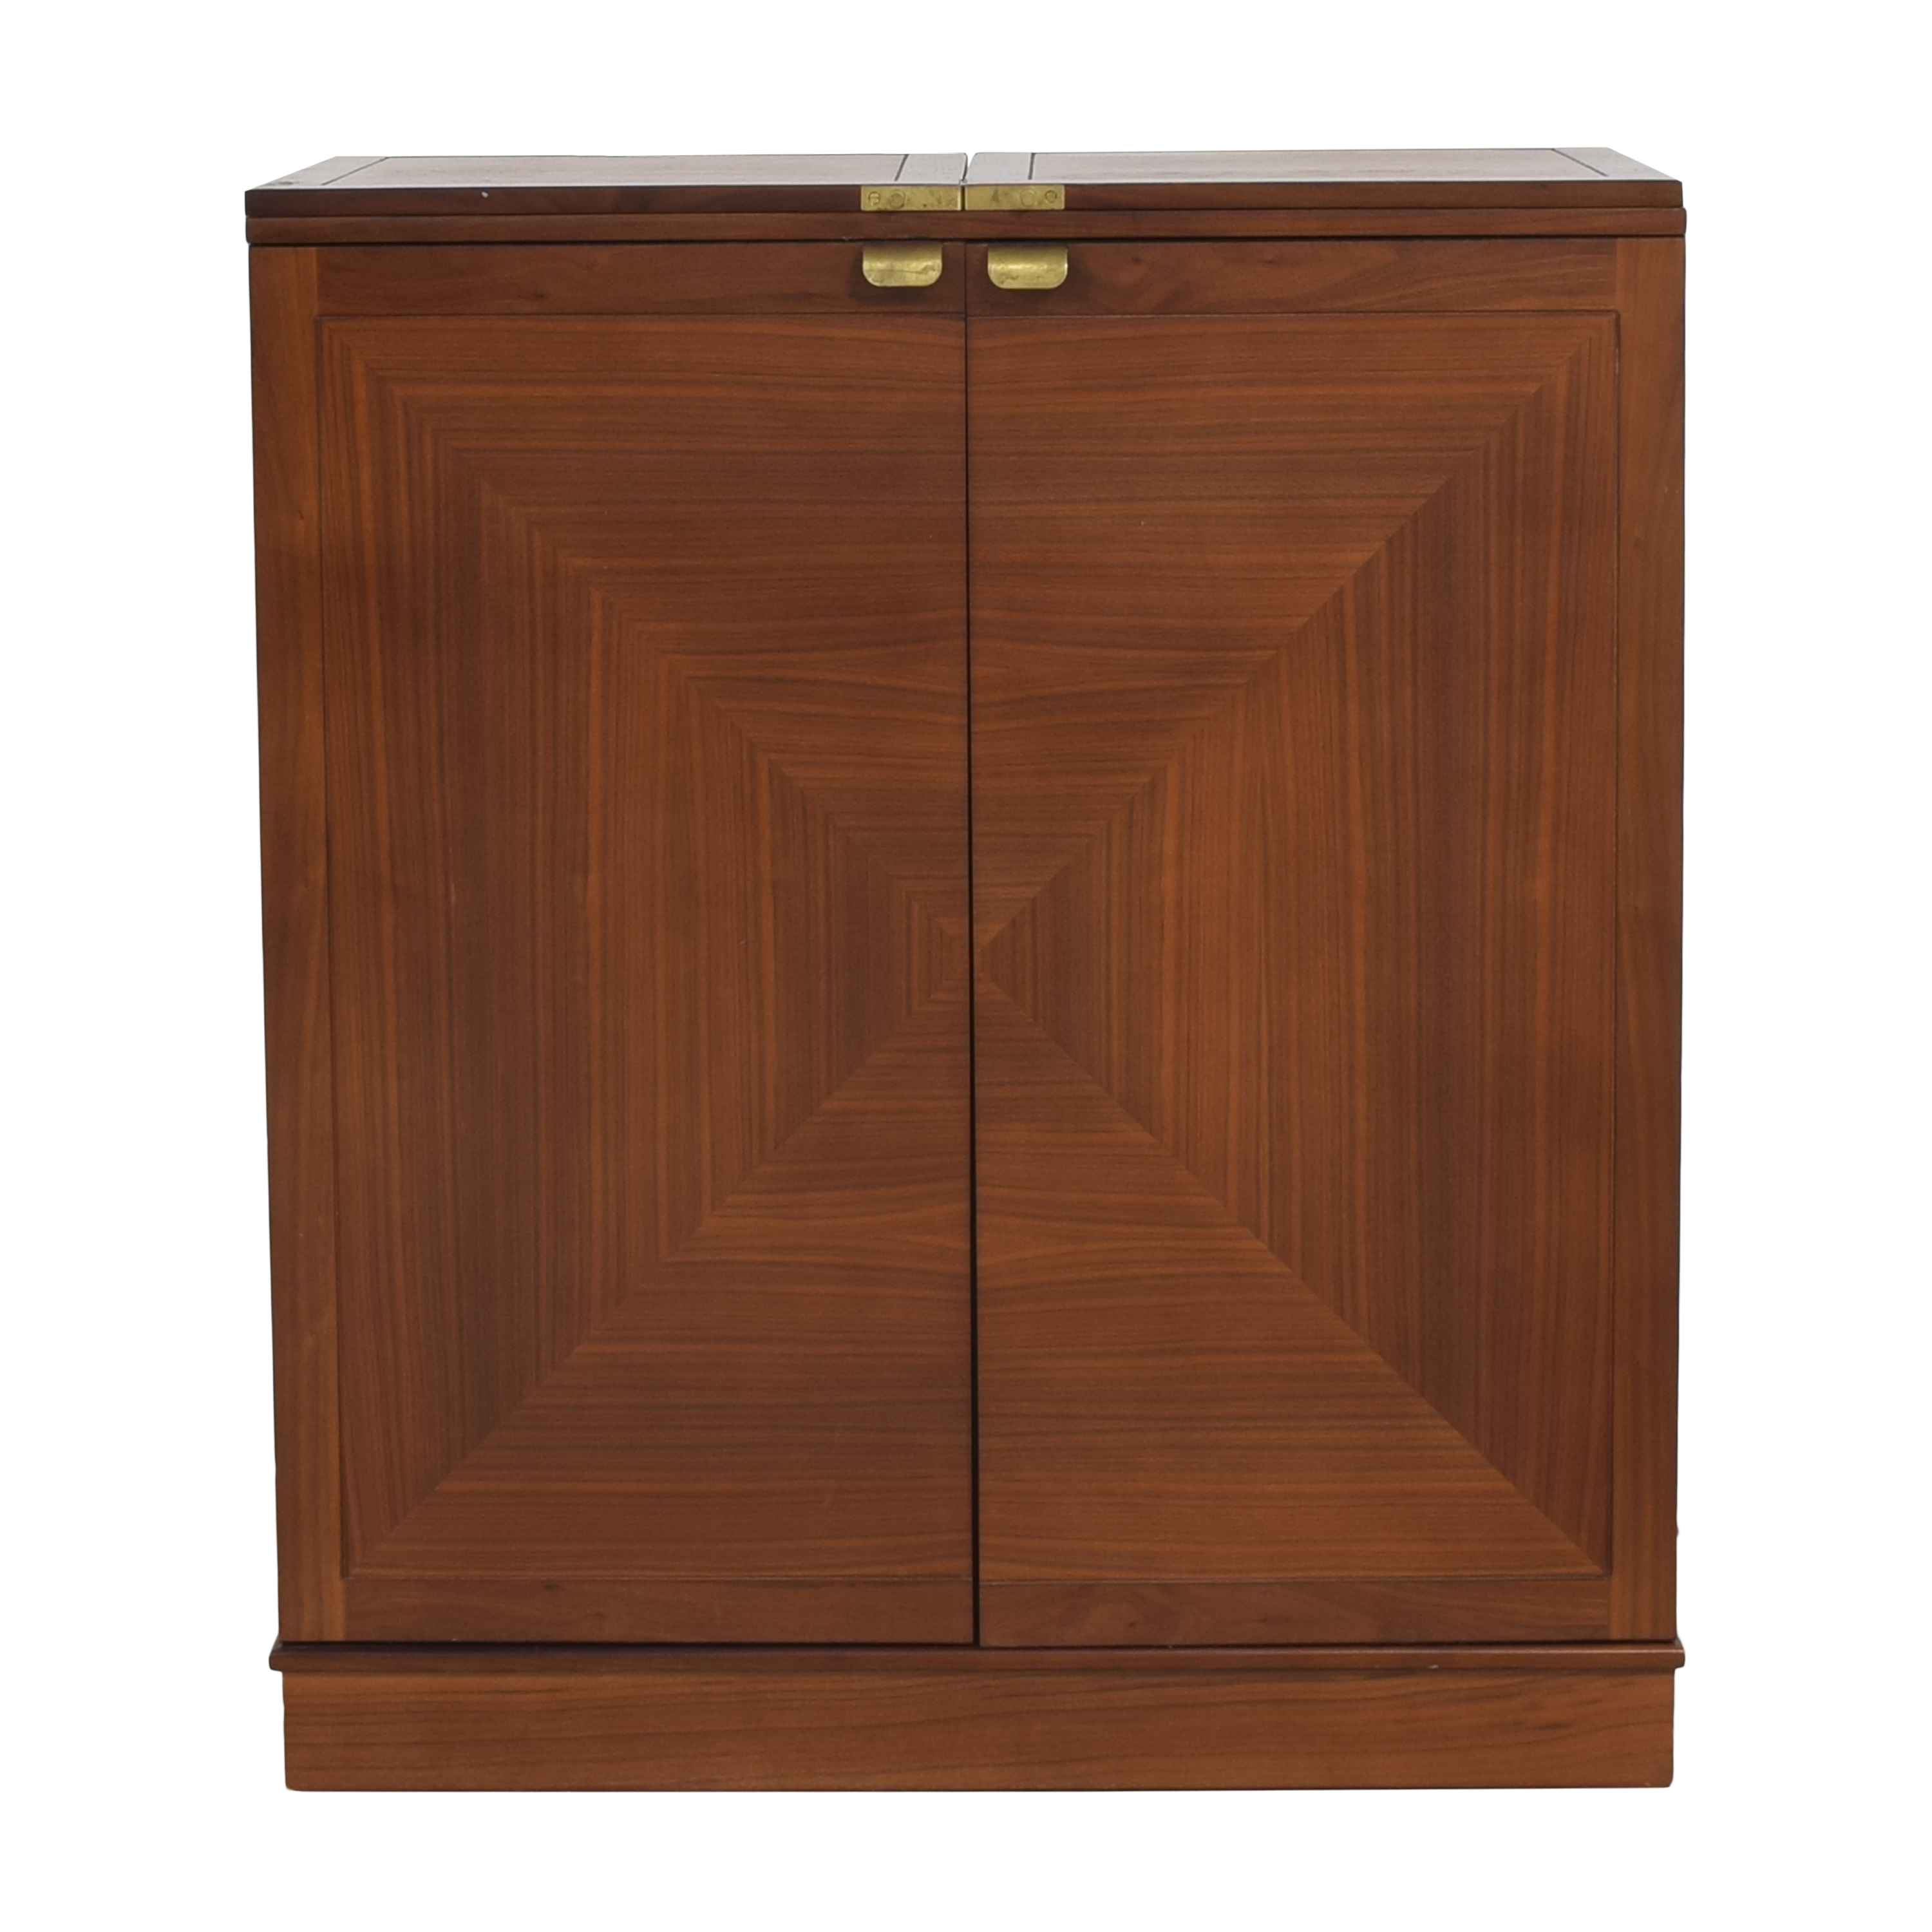 Crate & Barrel Crate & Barrel Maxine Bar Cabinet used